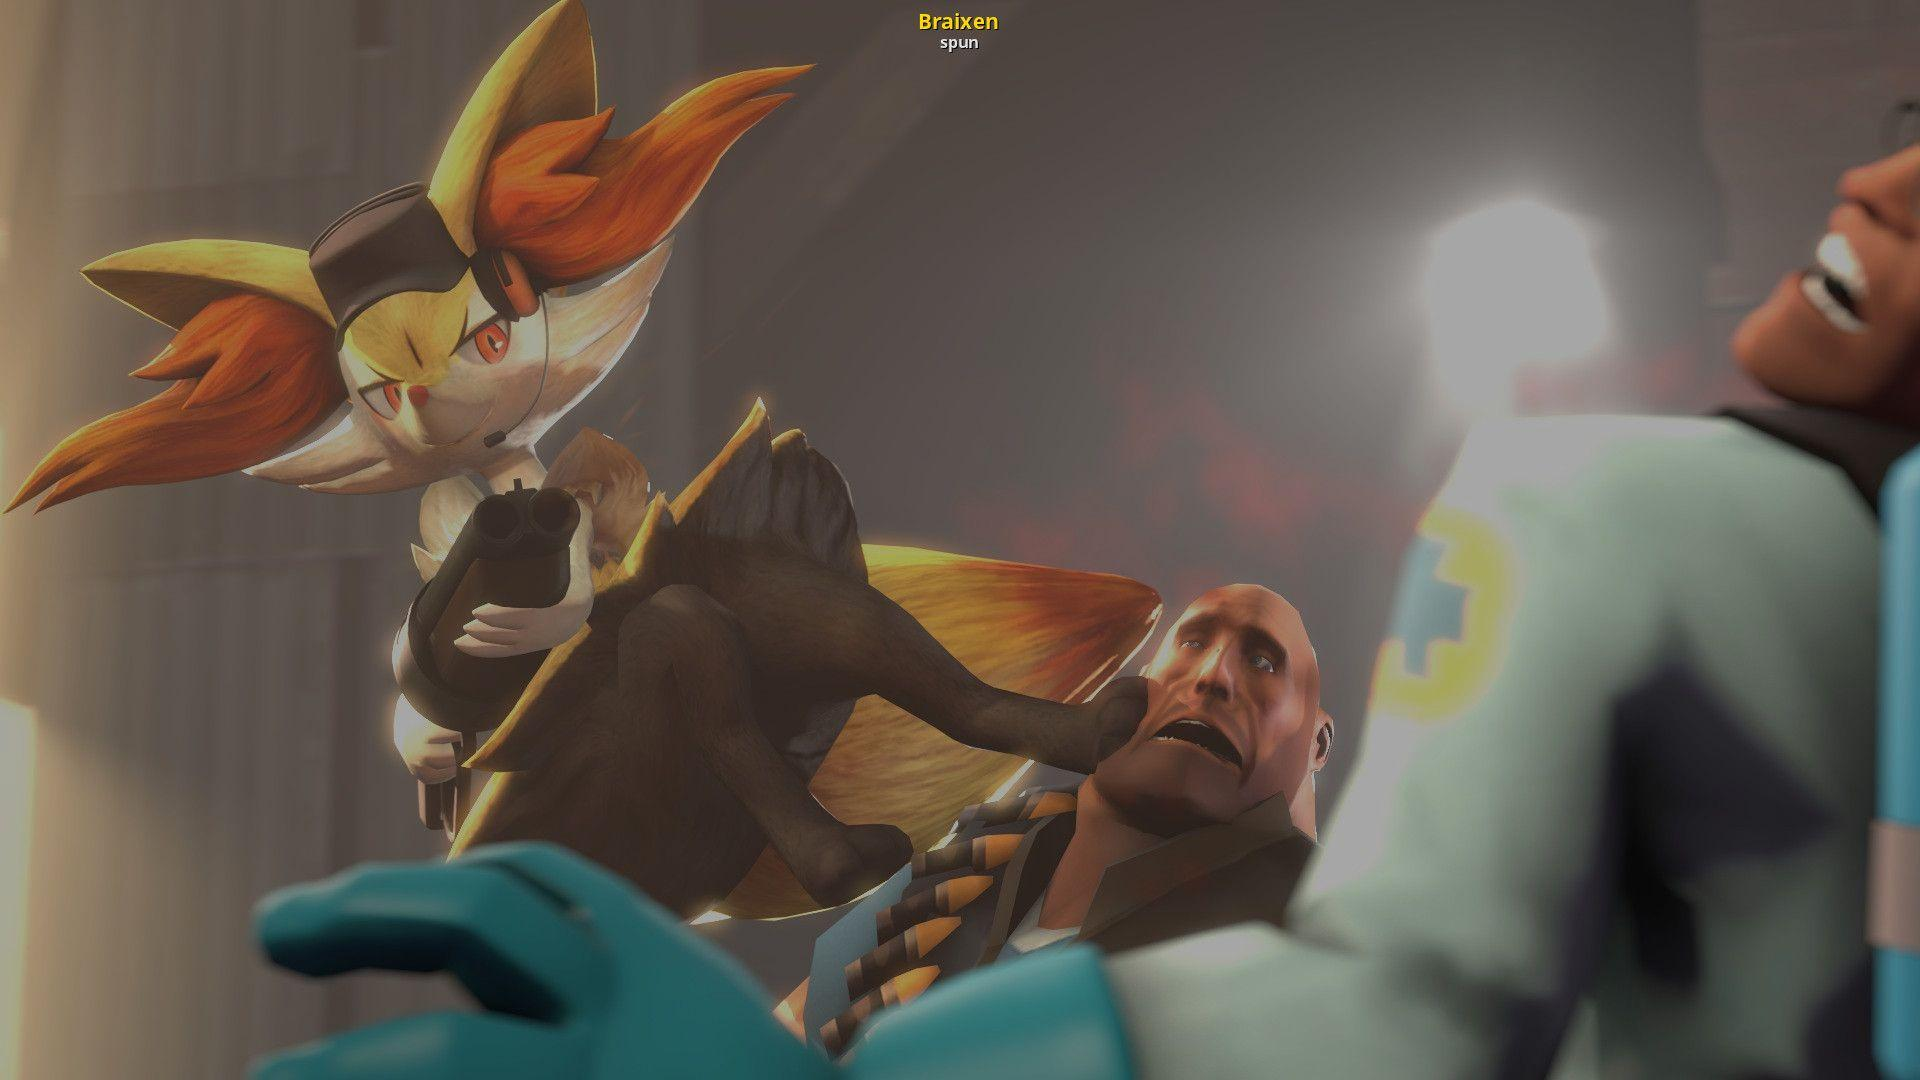 Braixen | Team Fortress 2 Skin Mods